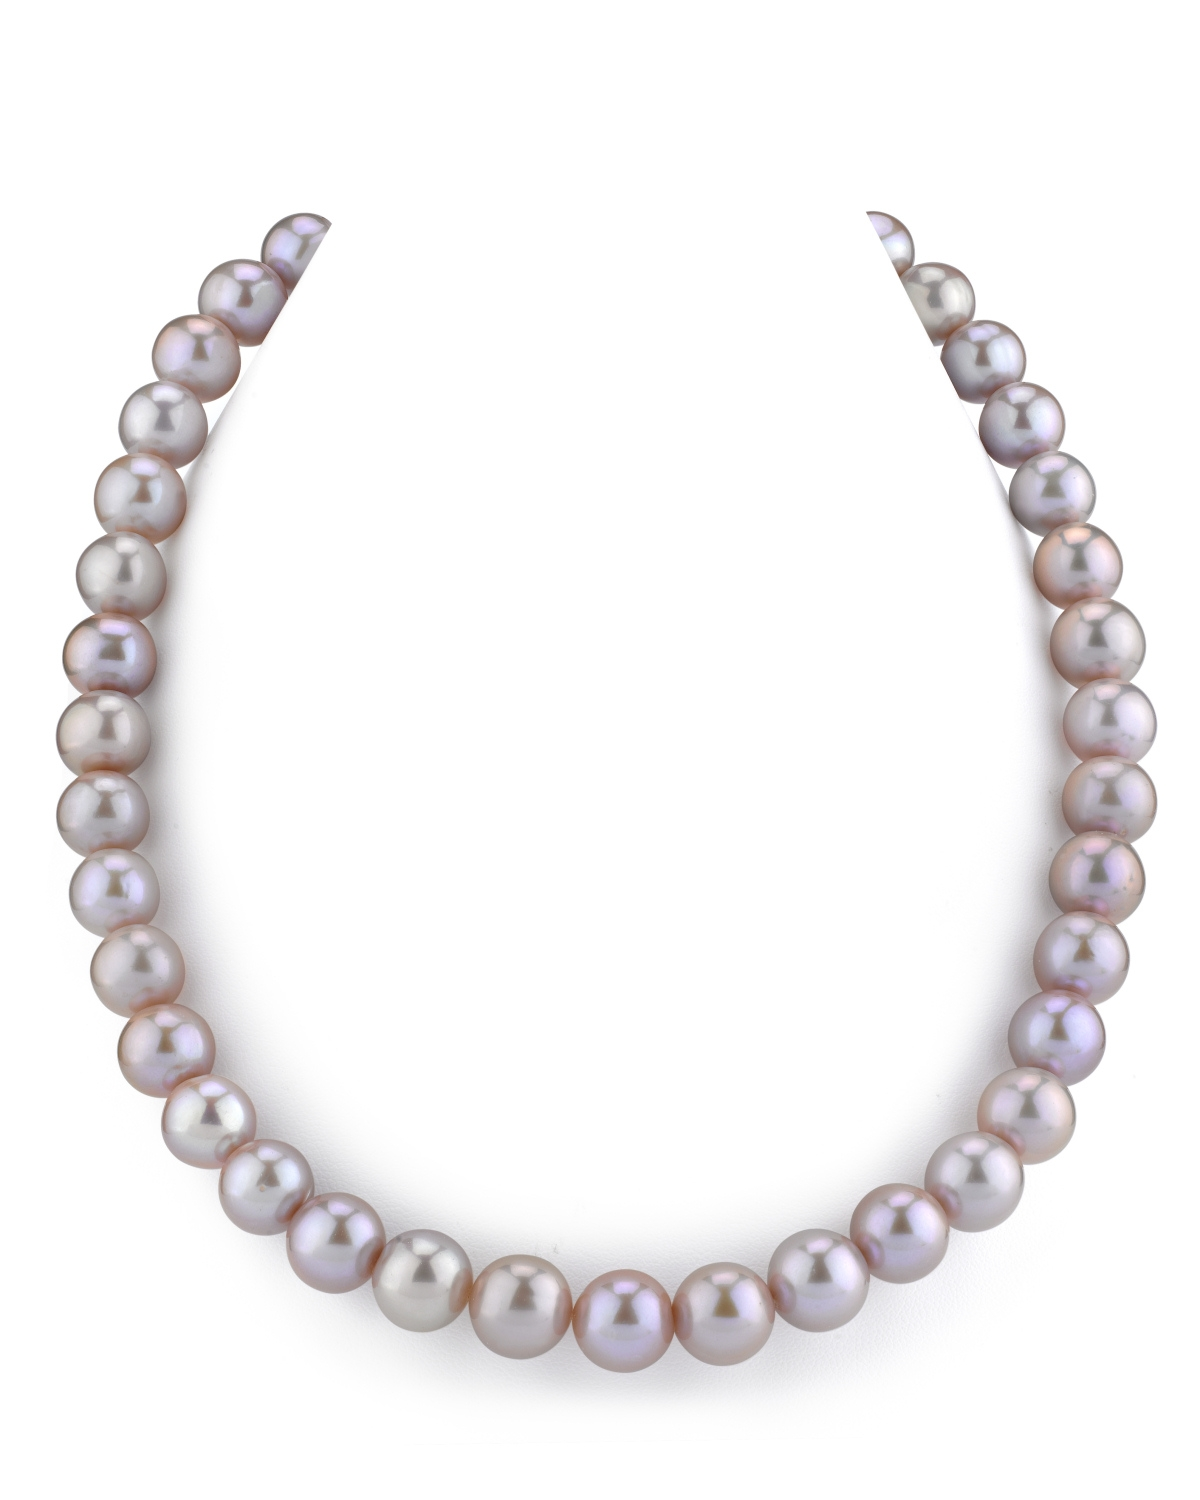 """THE PEARL SOURCE 14K Gold 11-12mm AAA Quality Pink Freshwater Cultured Pearl Necklace for Women in 16"""" Choker... by The Pearl Source"""